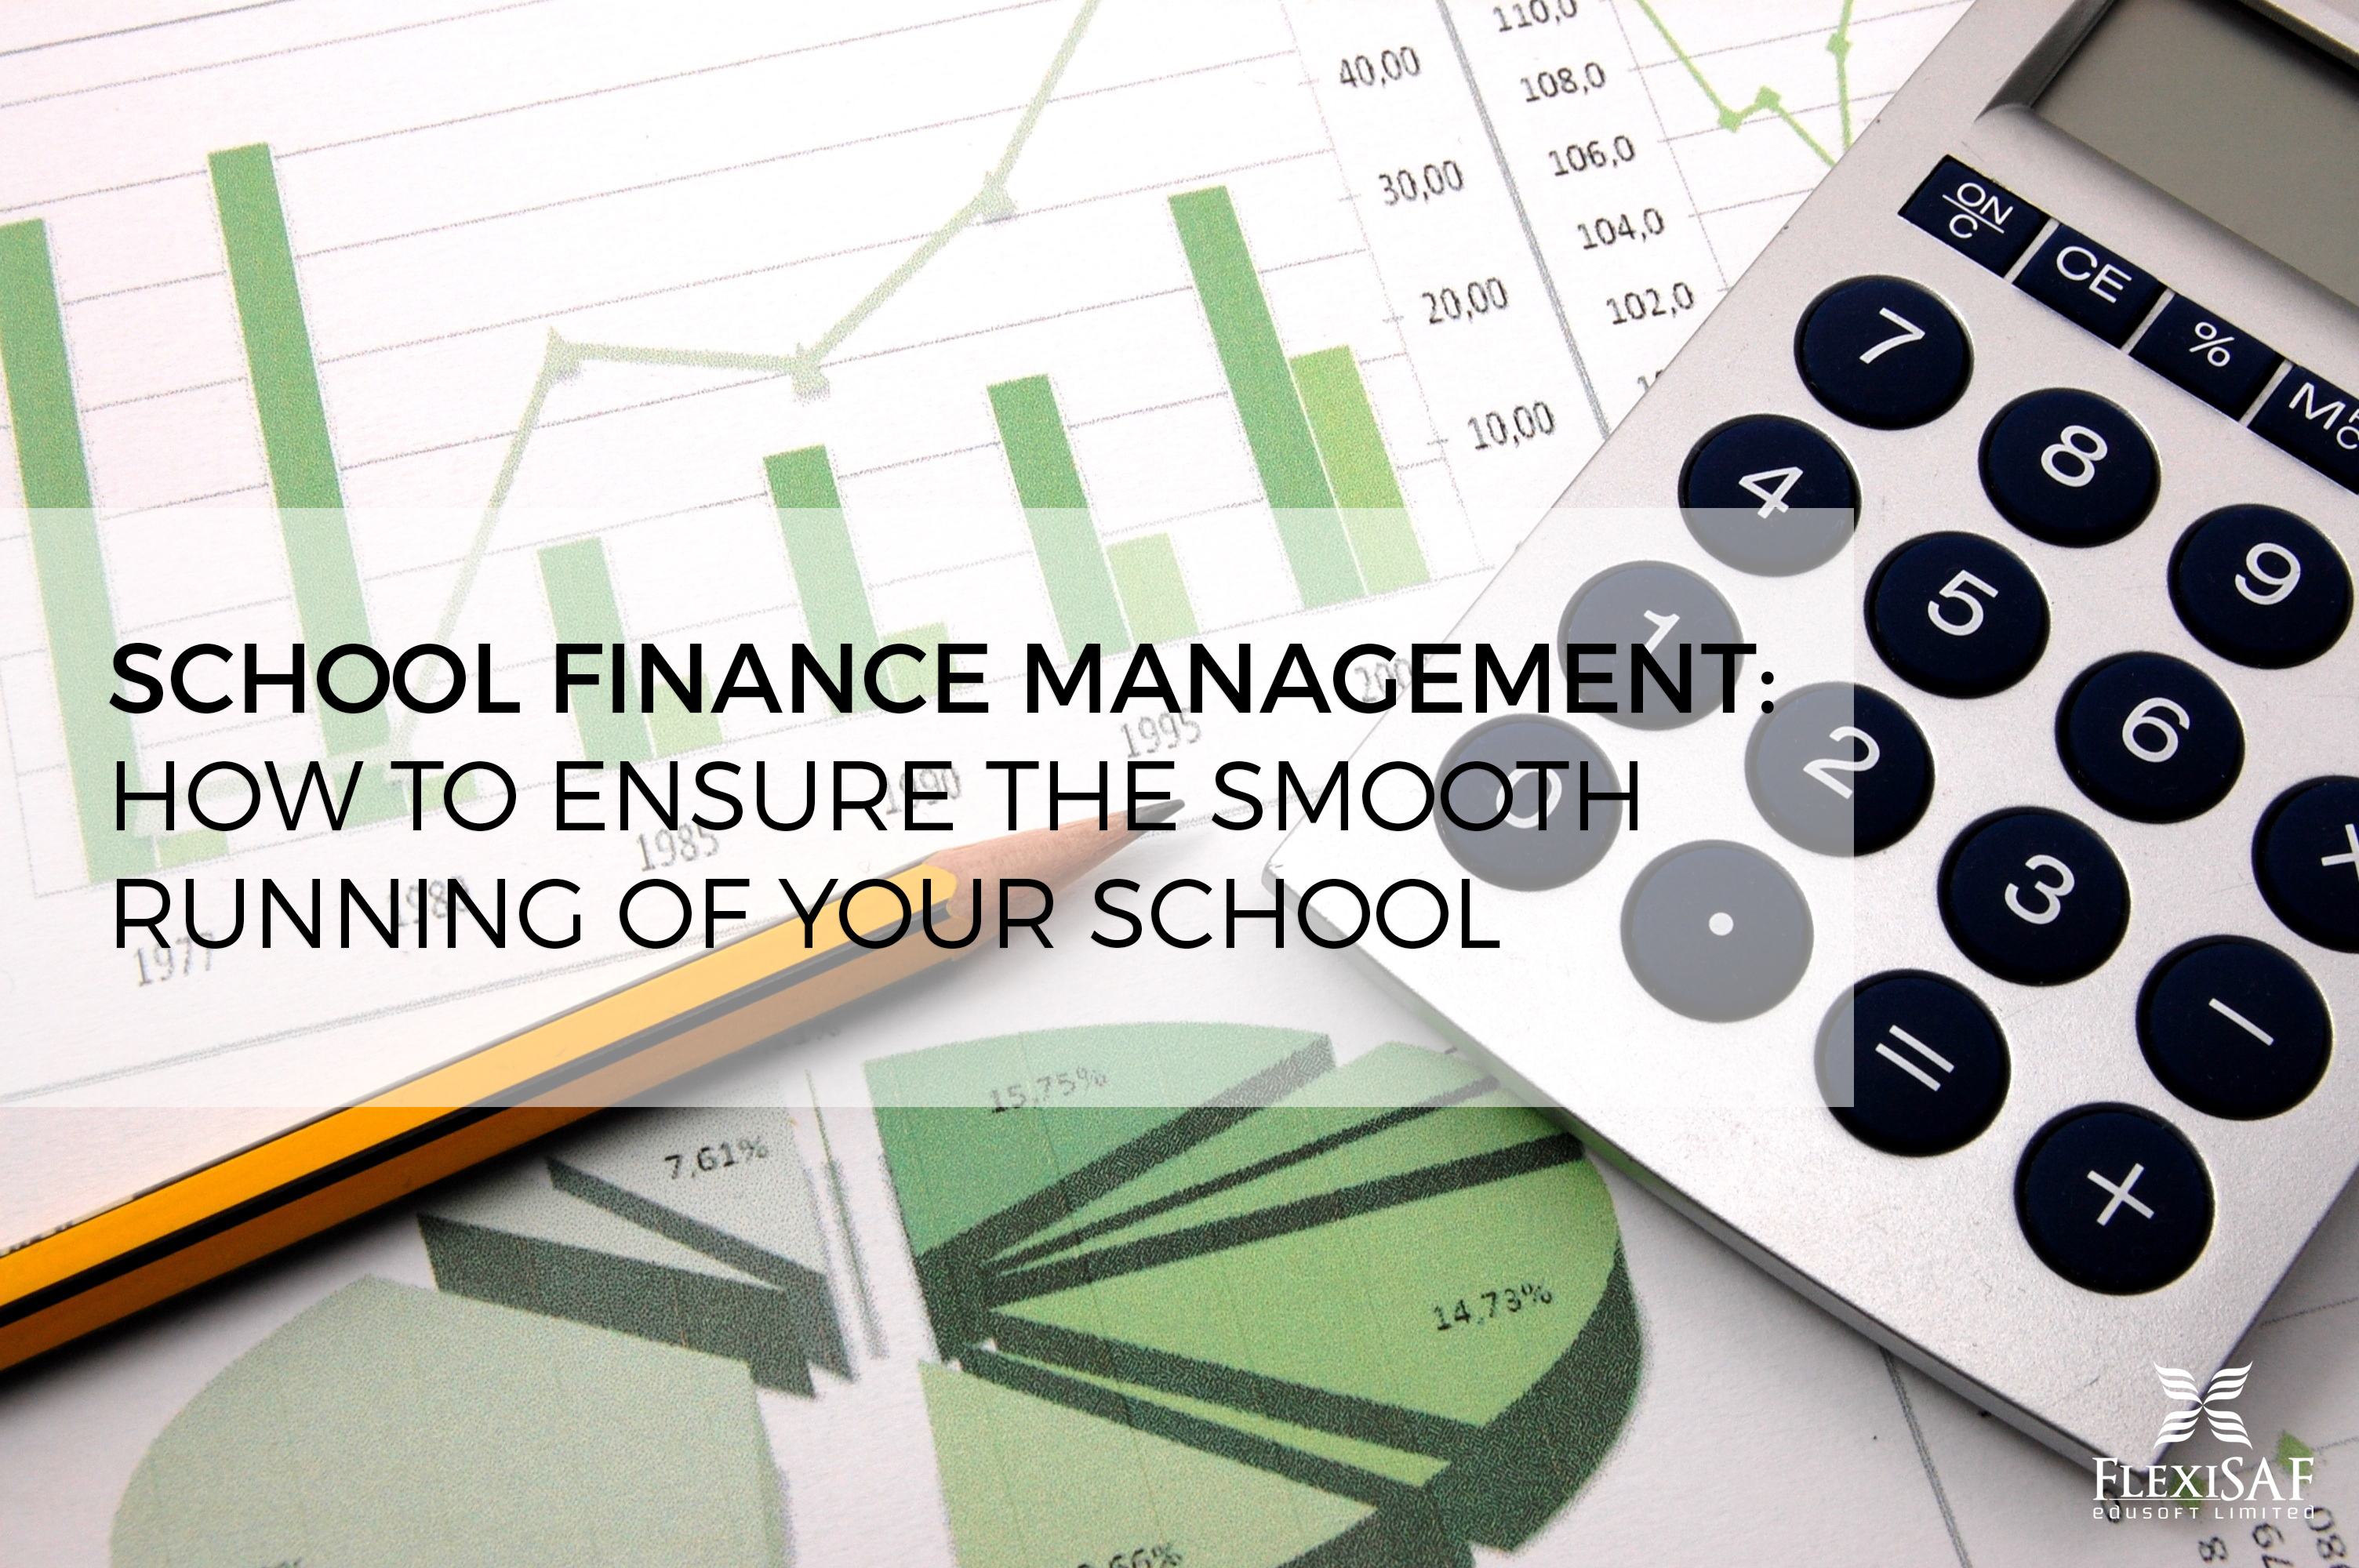 School Finance Management: How to Ensure Smooth Running of Your School